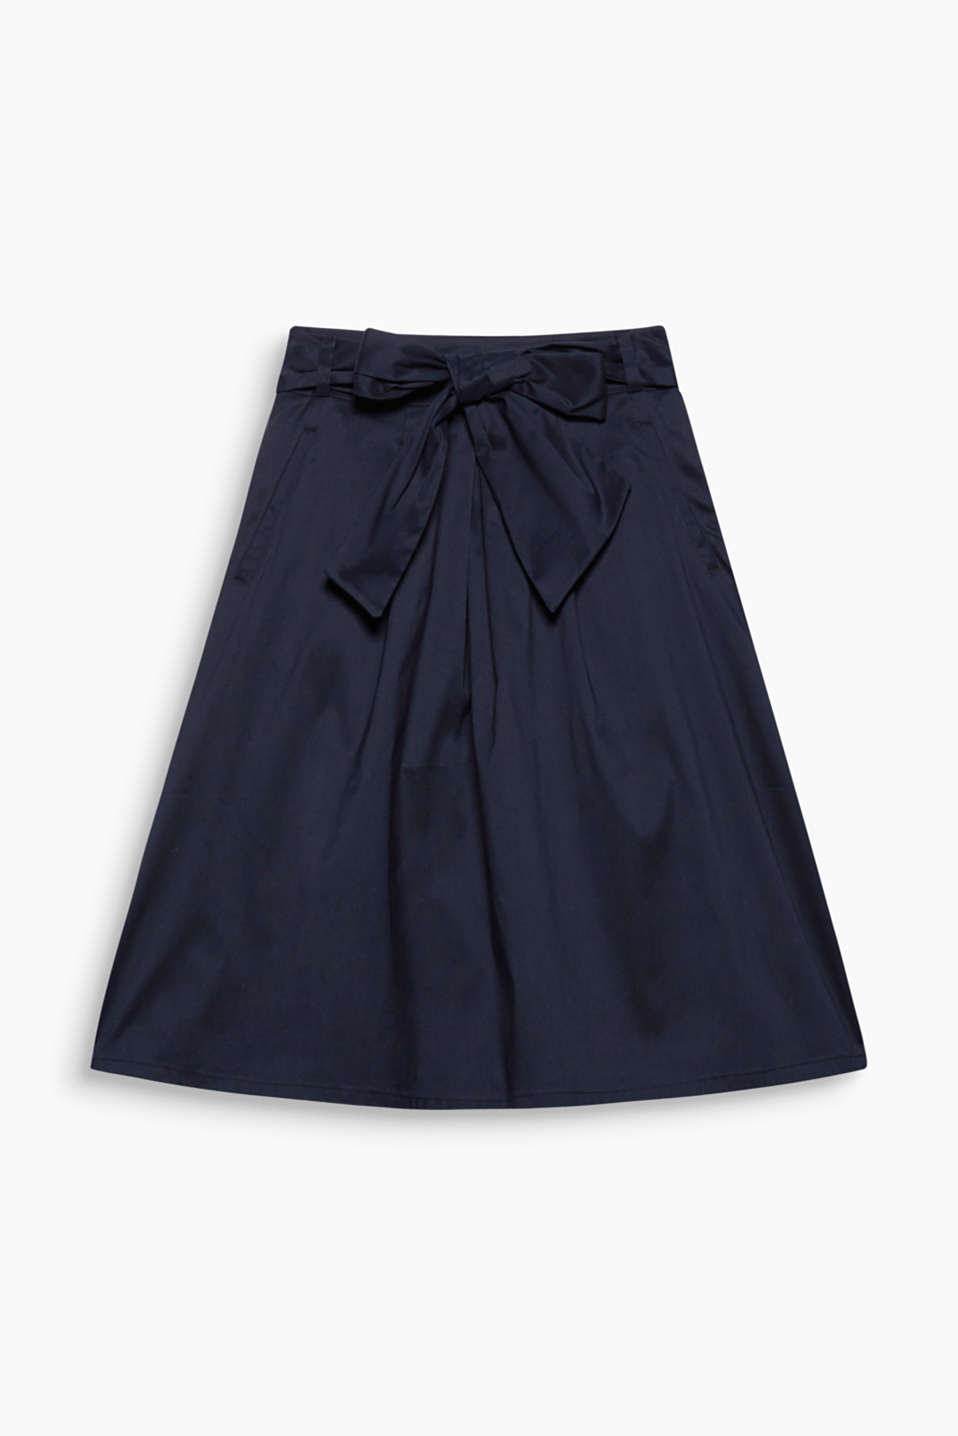 This lightly flared chintz skirt with a soft shimmer and wide, bow-fastening belt looks feminine and chic!